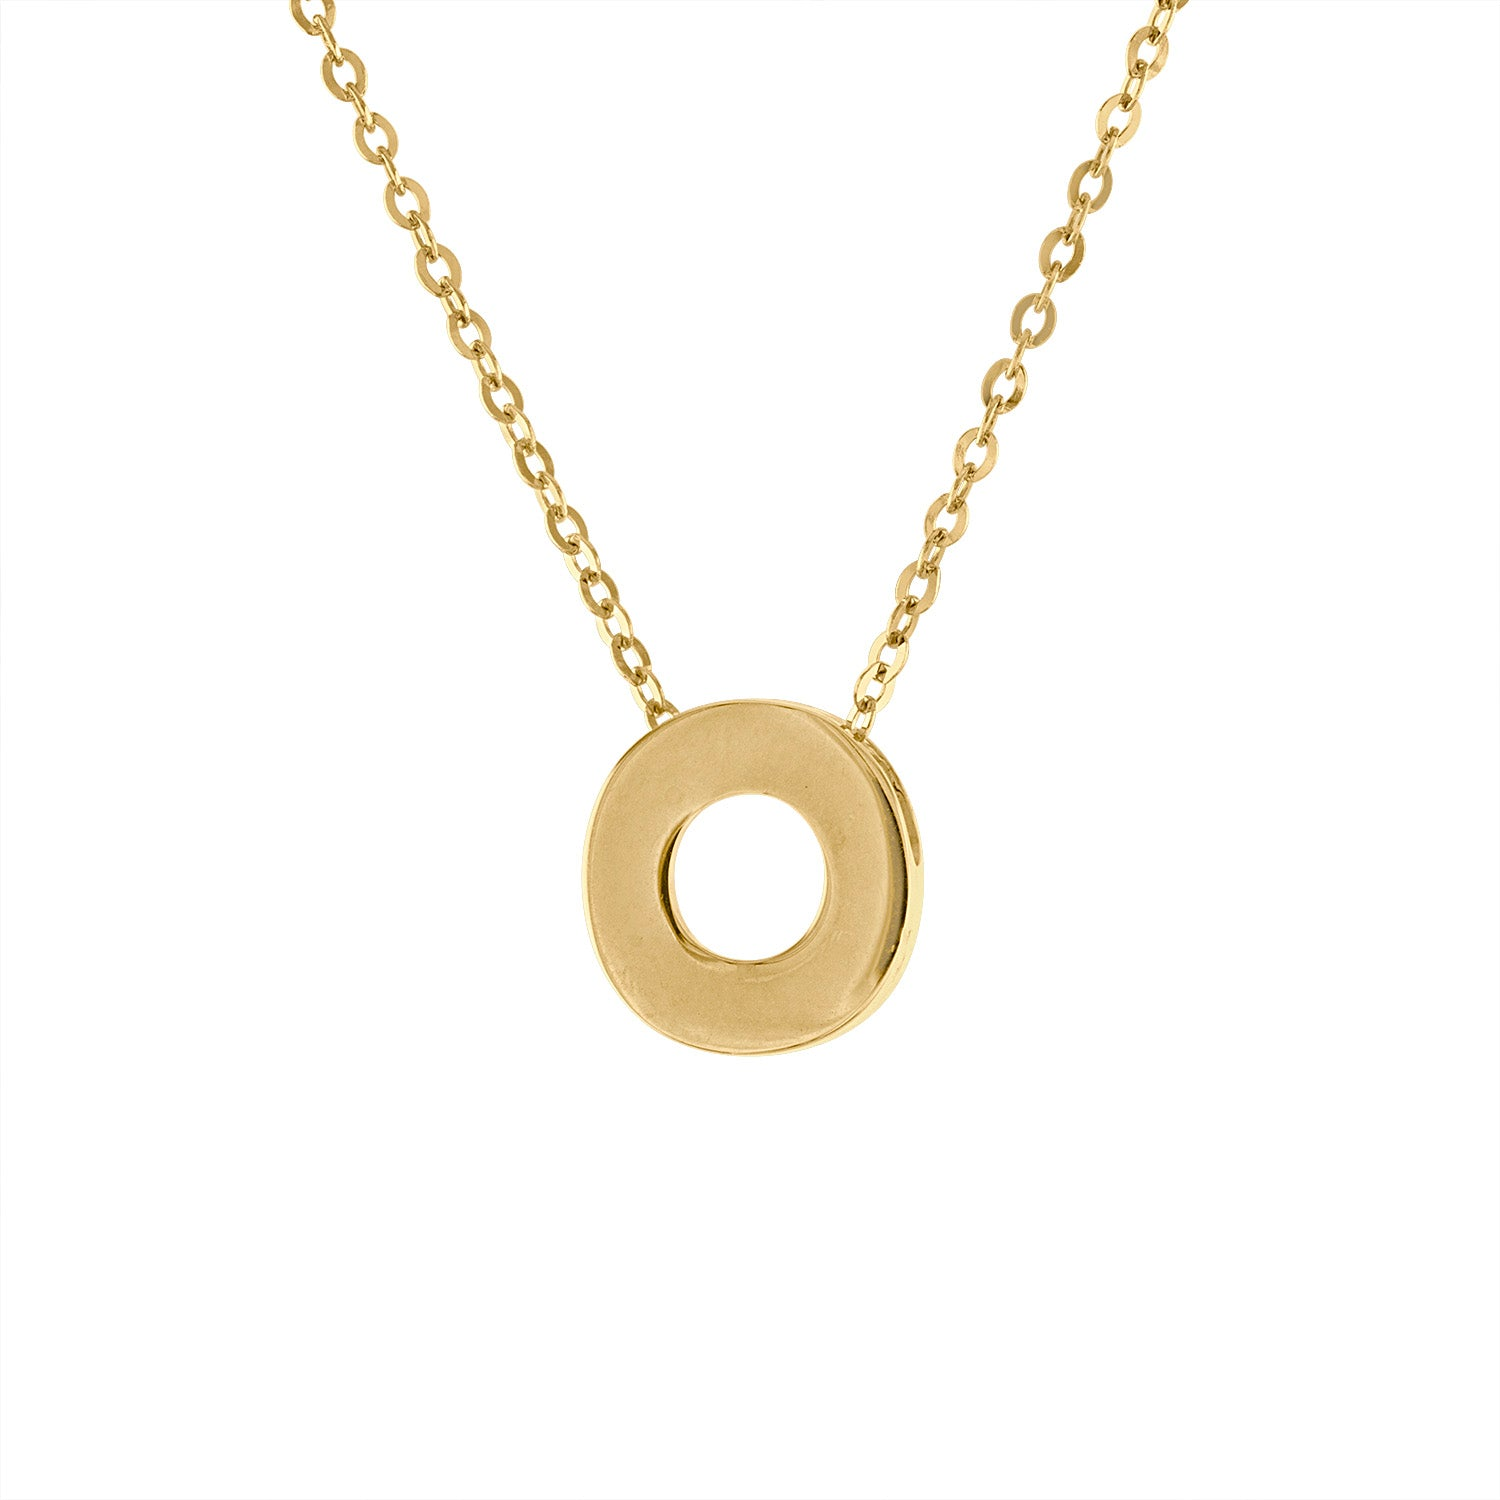 14k Yellow Gold plain initial O necklace